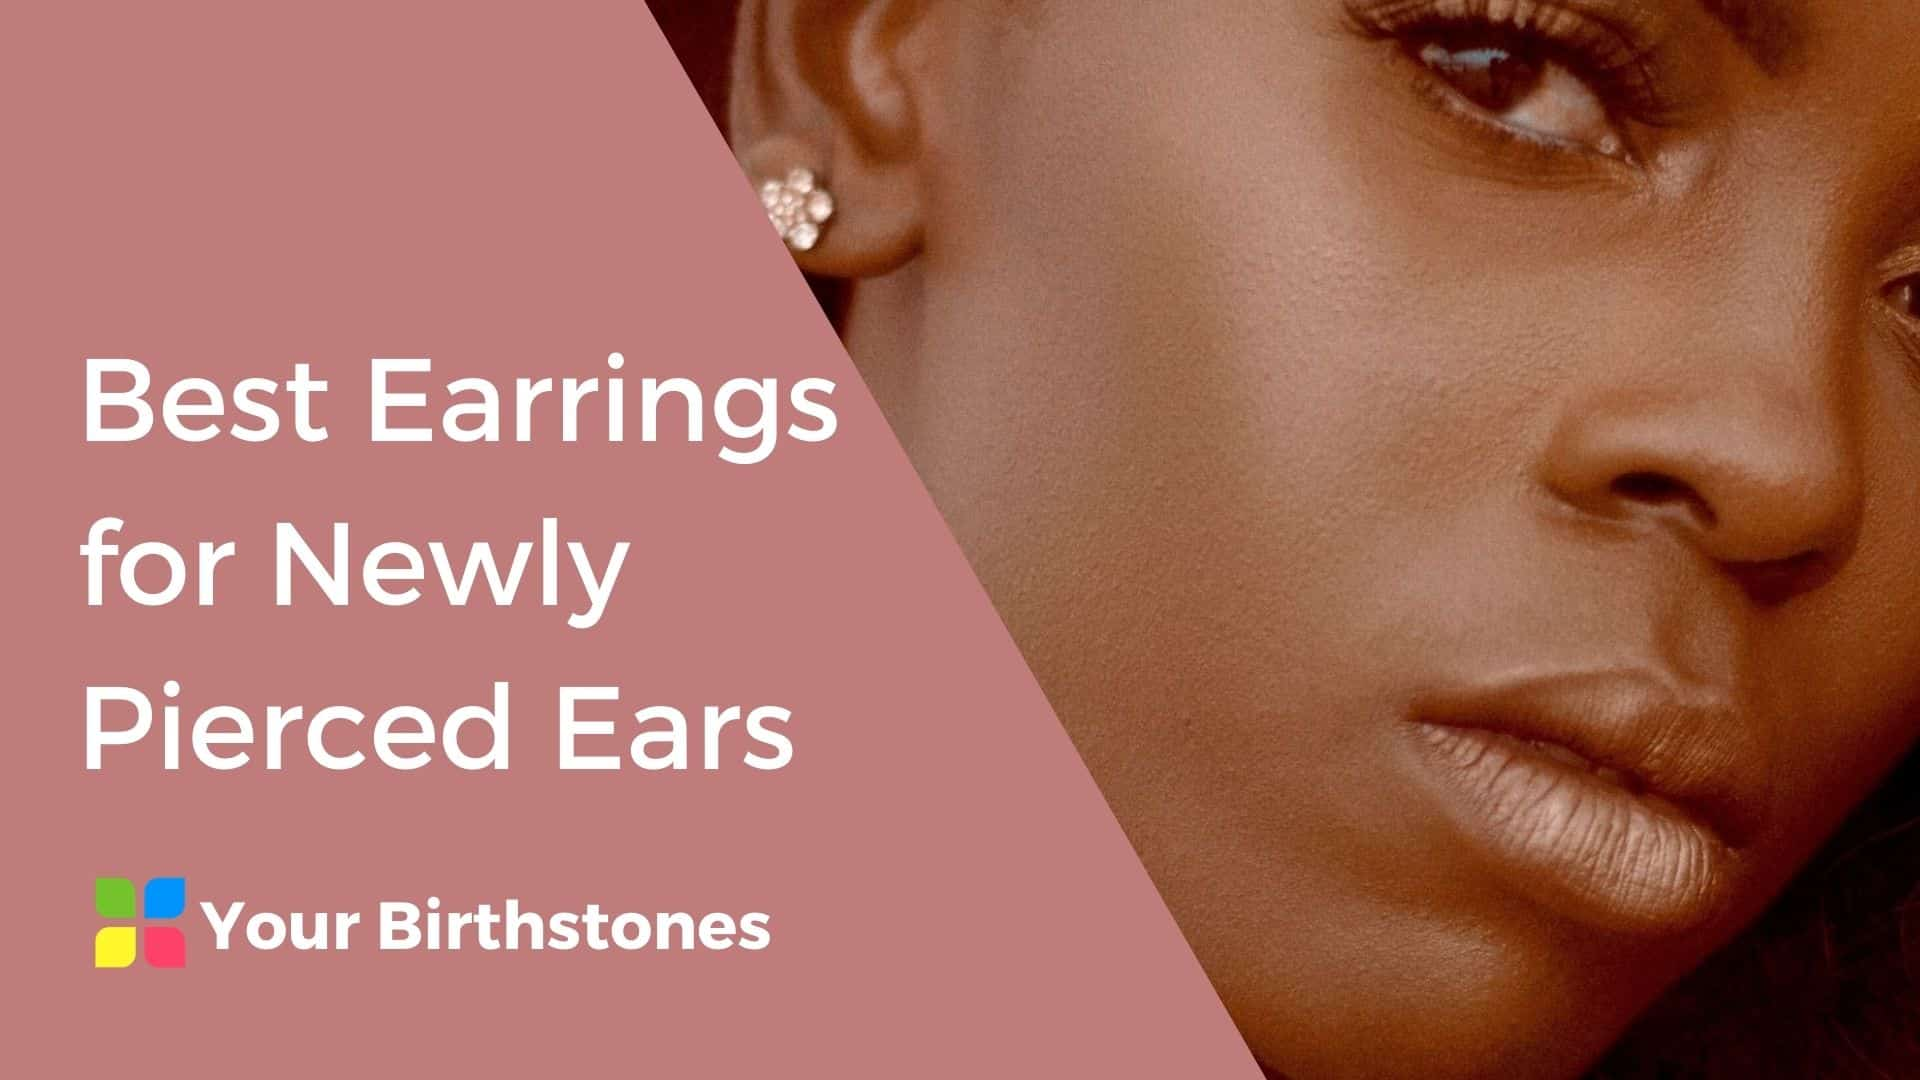 Best Earrings for Newly Pierced Ears